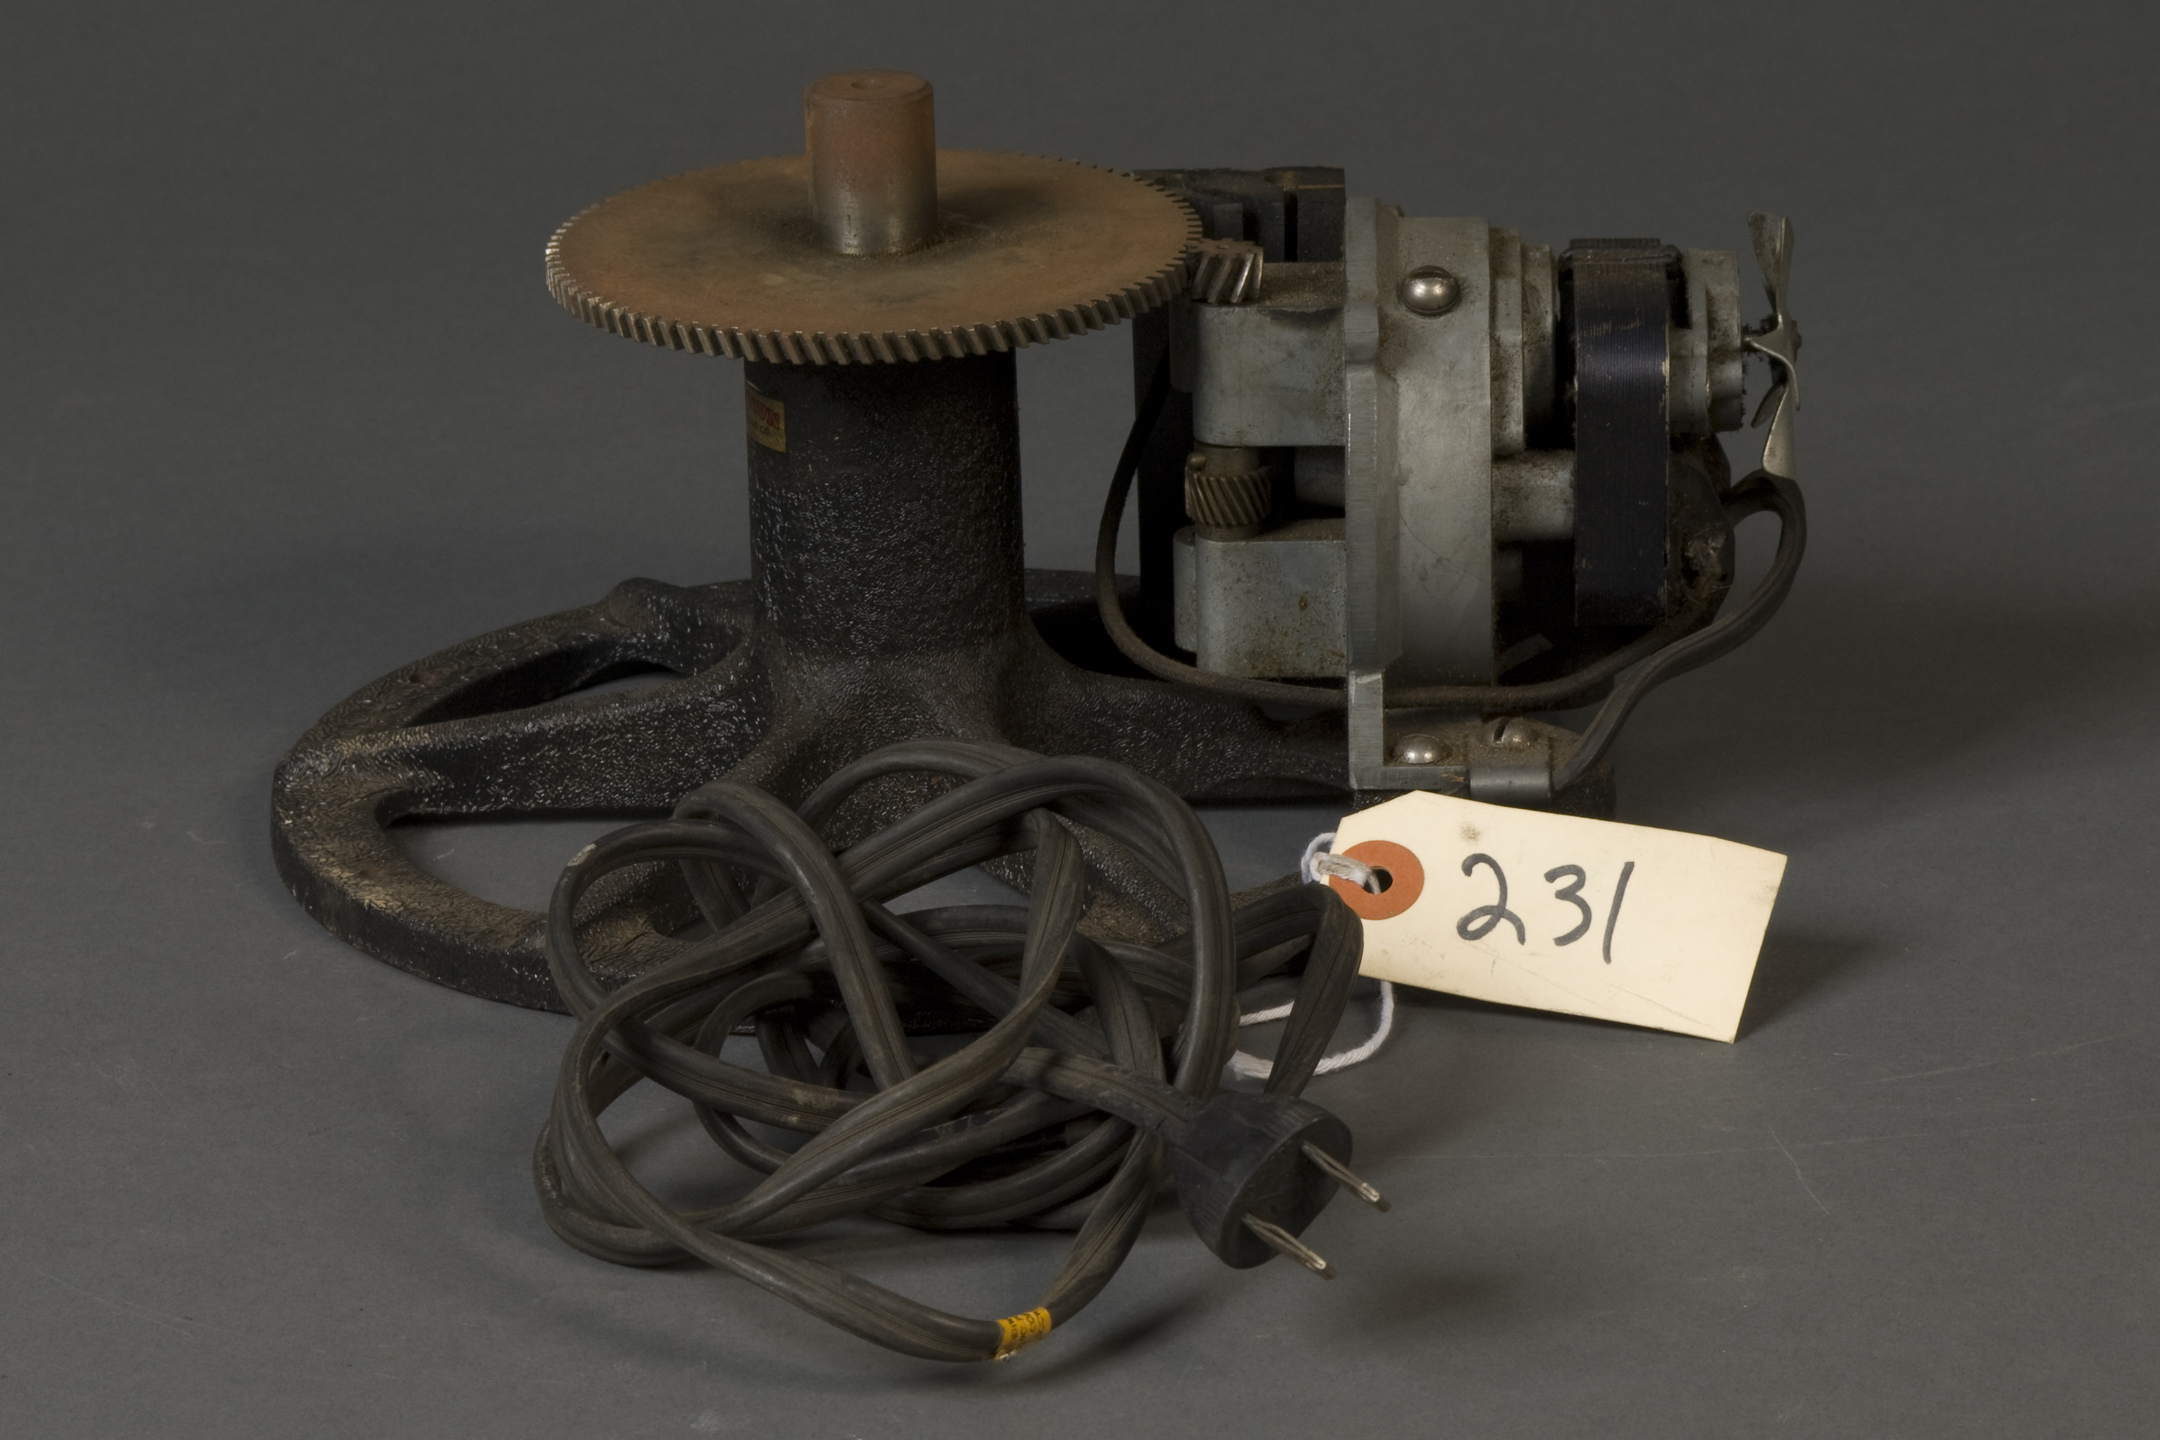 "geared mechanism with an electric plug. Attached to the plug's wire is a tag that reads ""231."" The device is geared to another smaller gear on a device with what looks like a flywheel coming from the front of it."